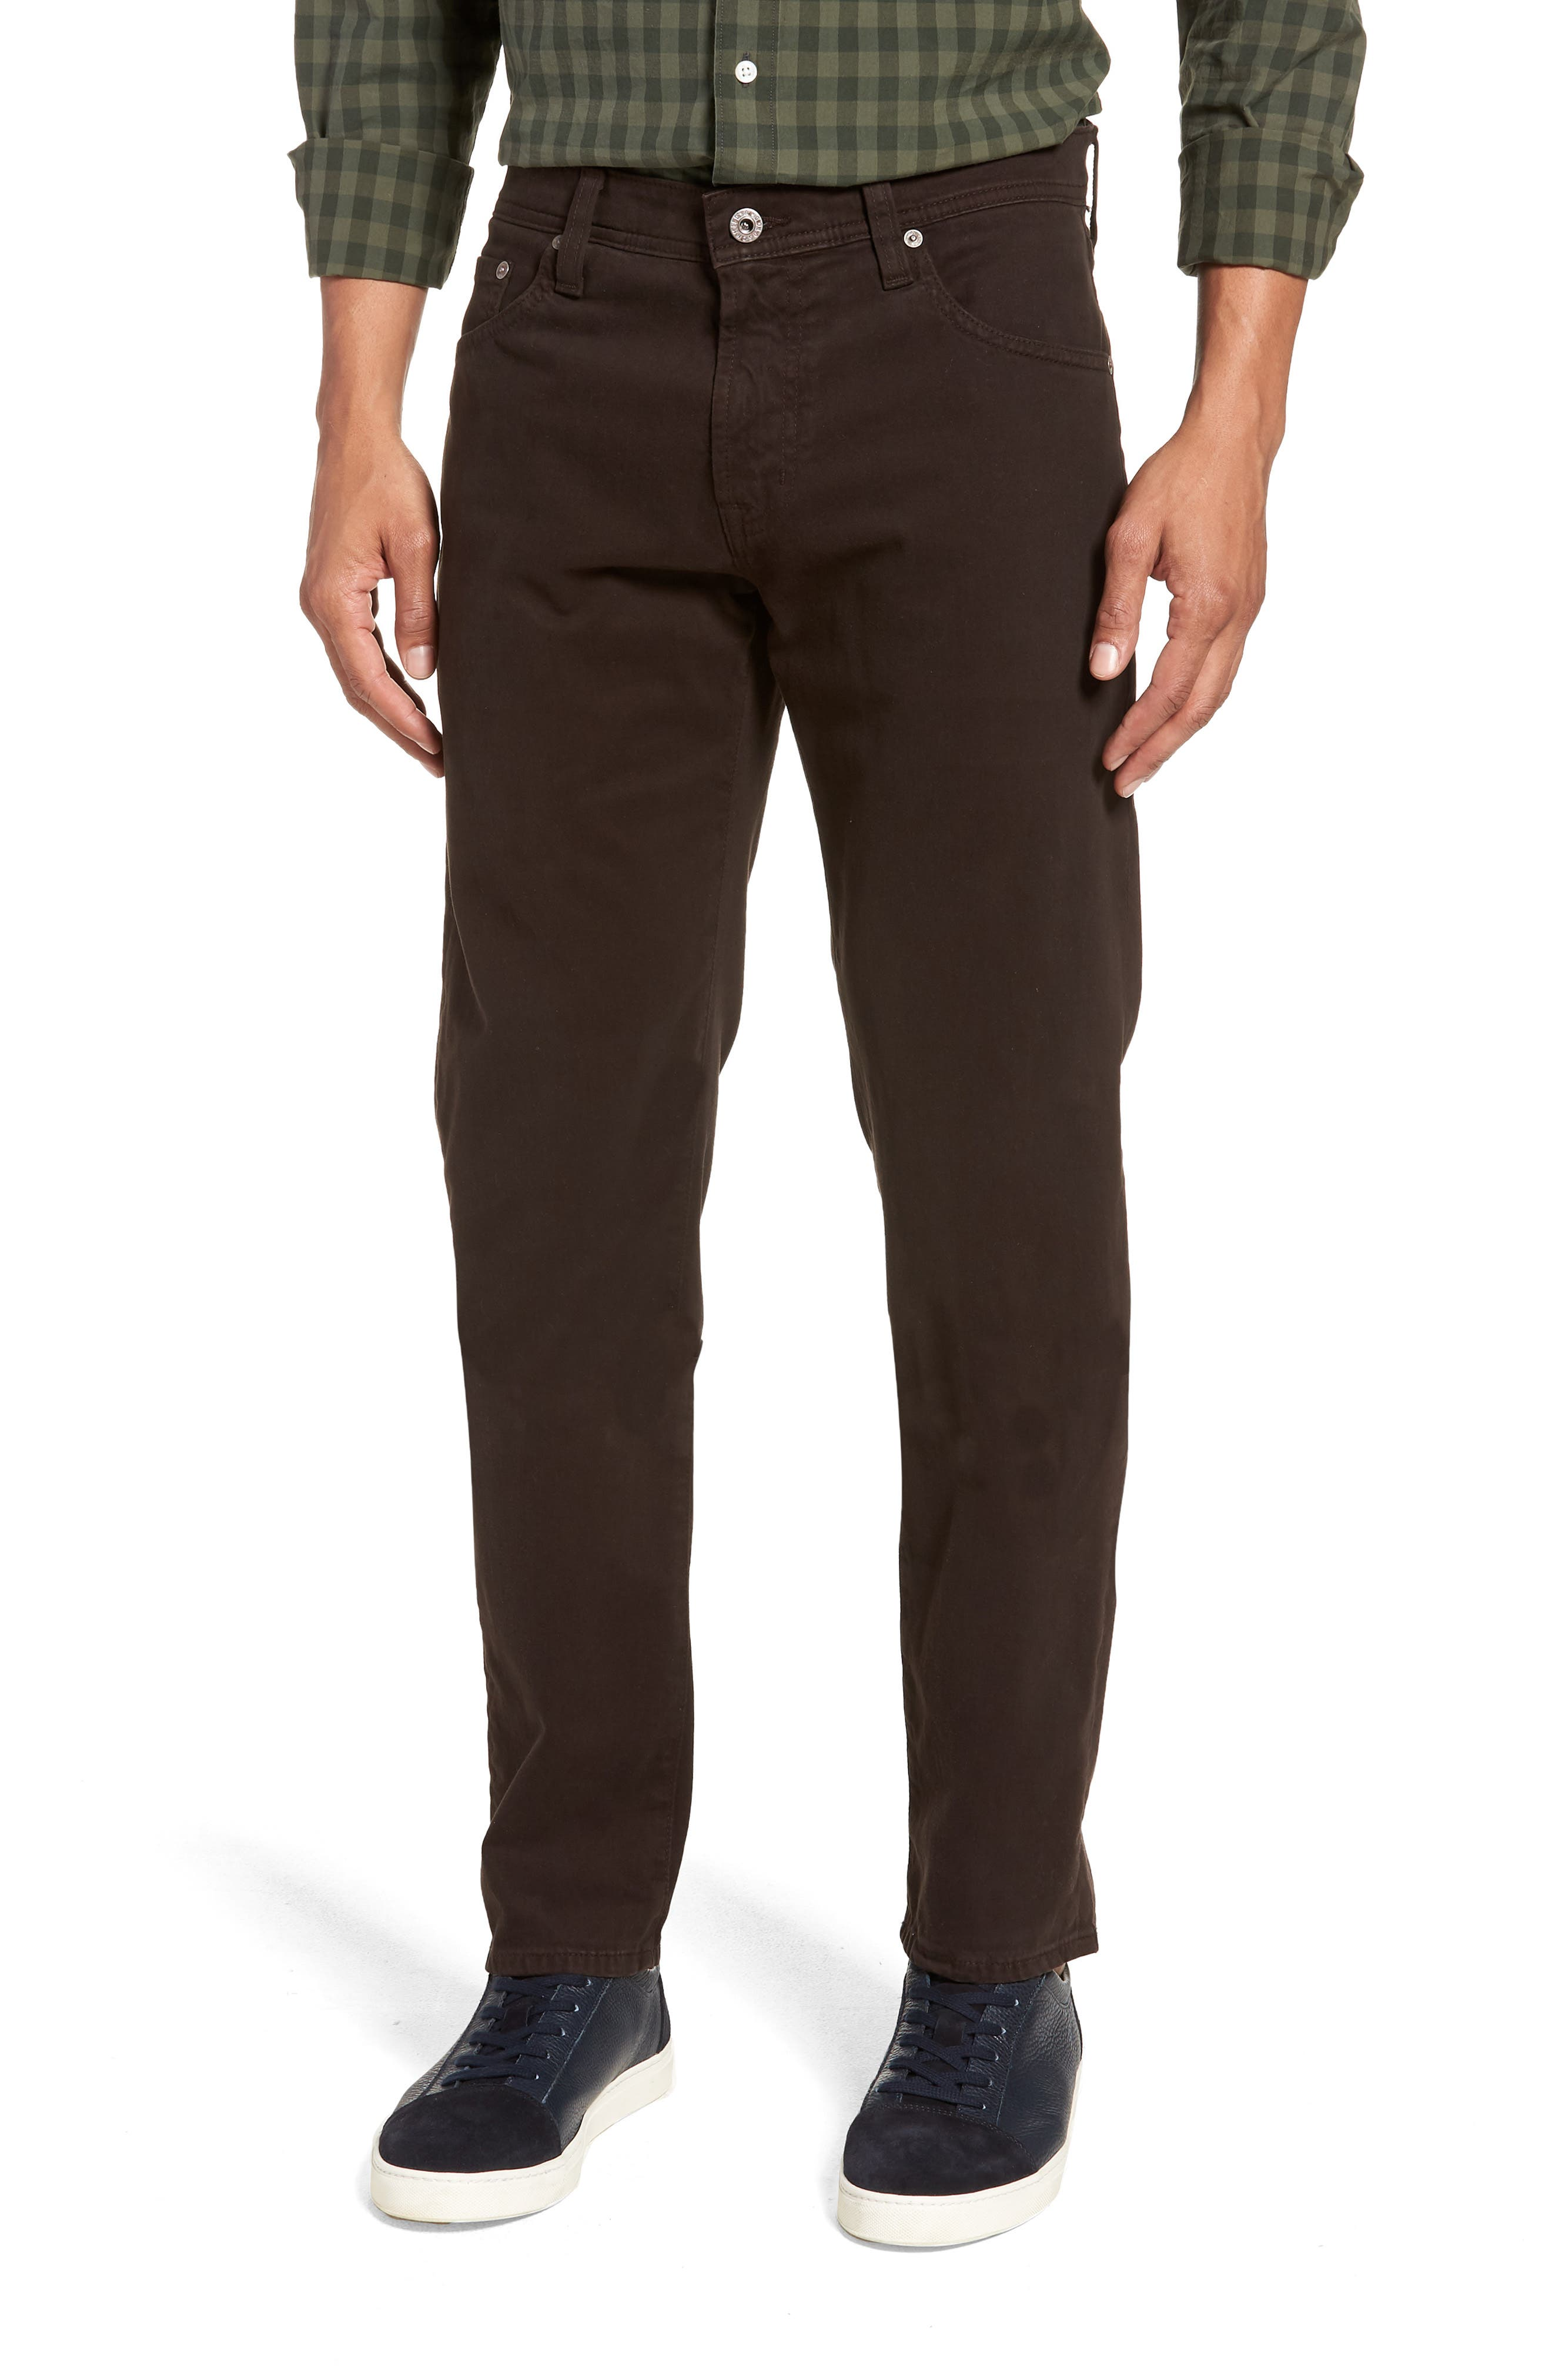 Tellis SUD Modern Slim Stretch Twill Pants,                             Main thumbnail 1, color,                             SHUTTER BROWN